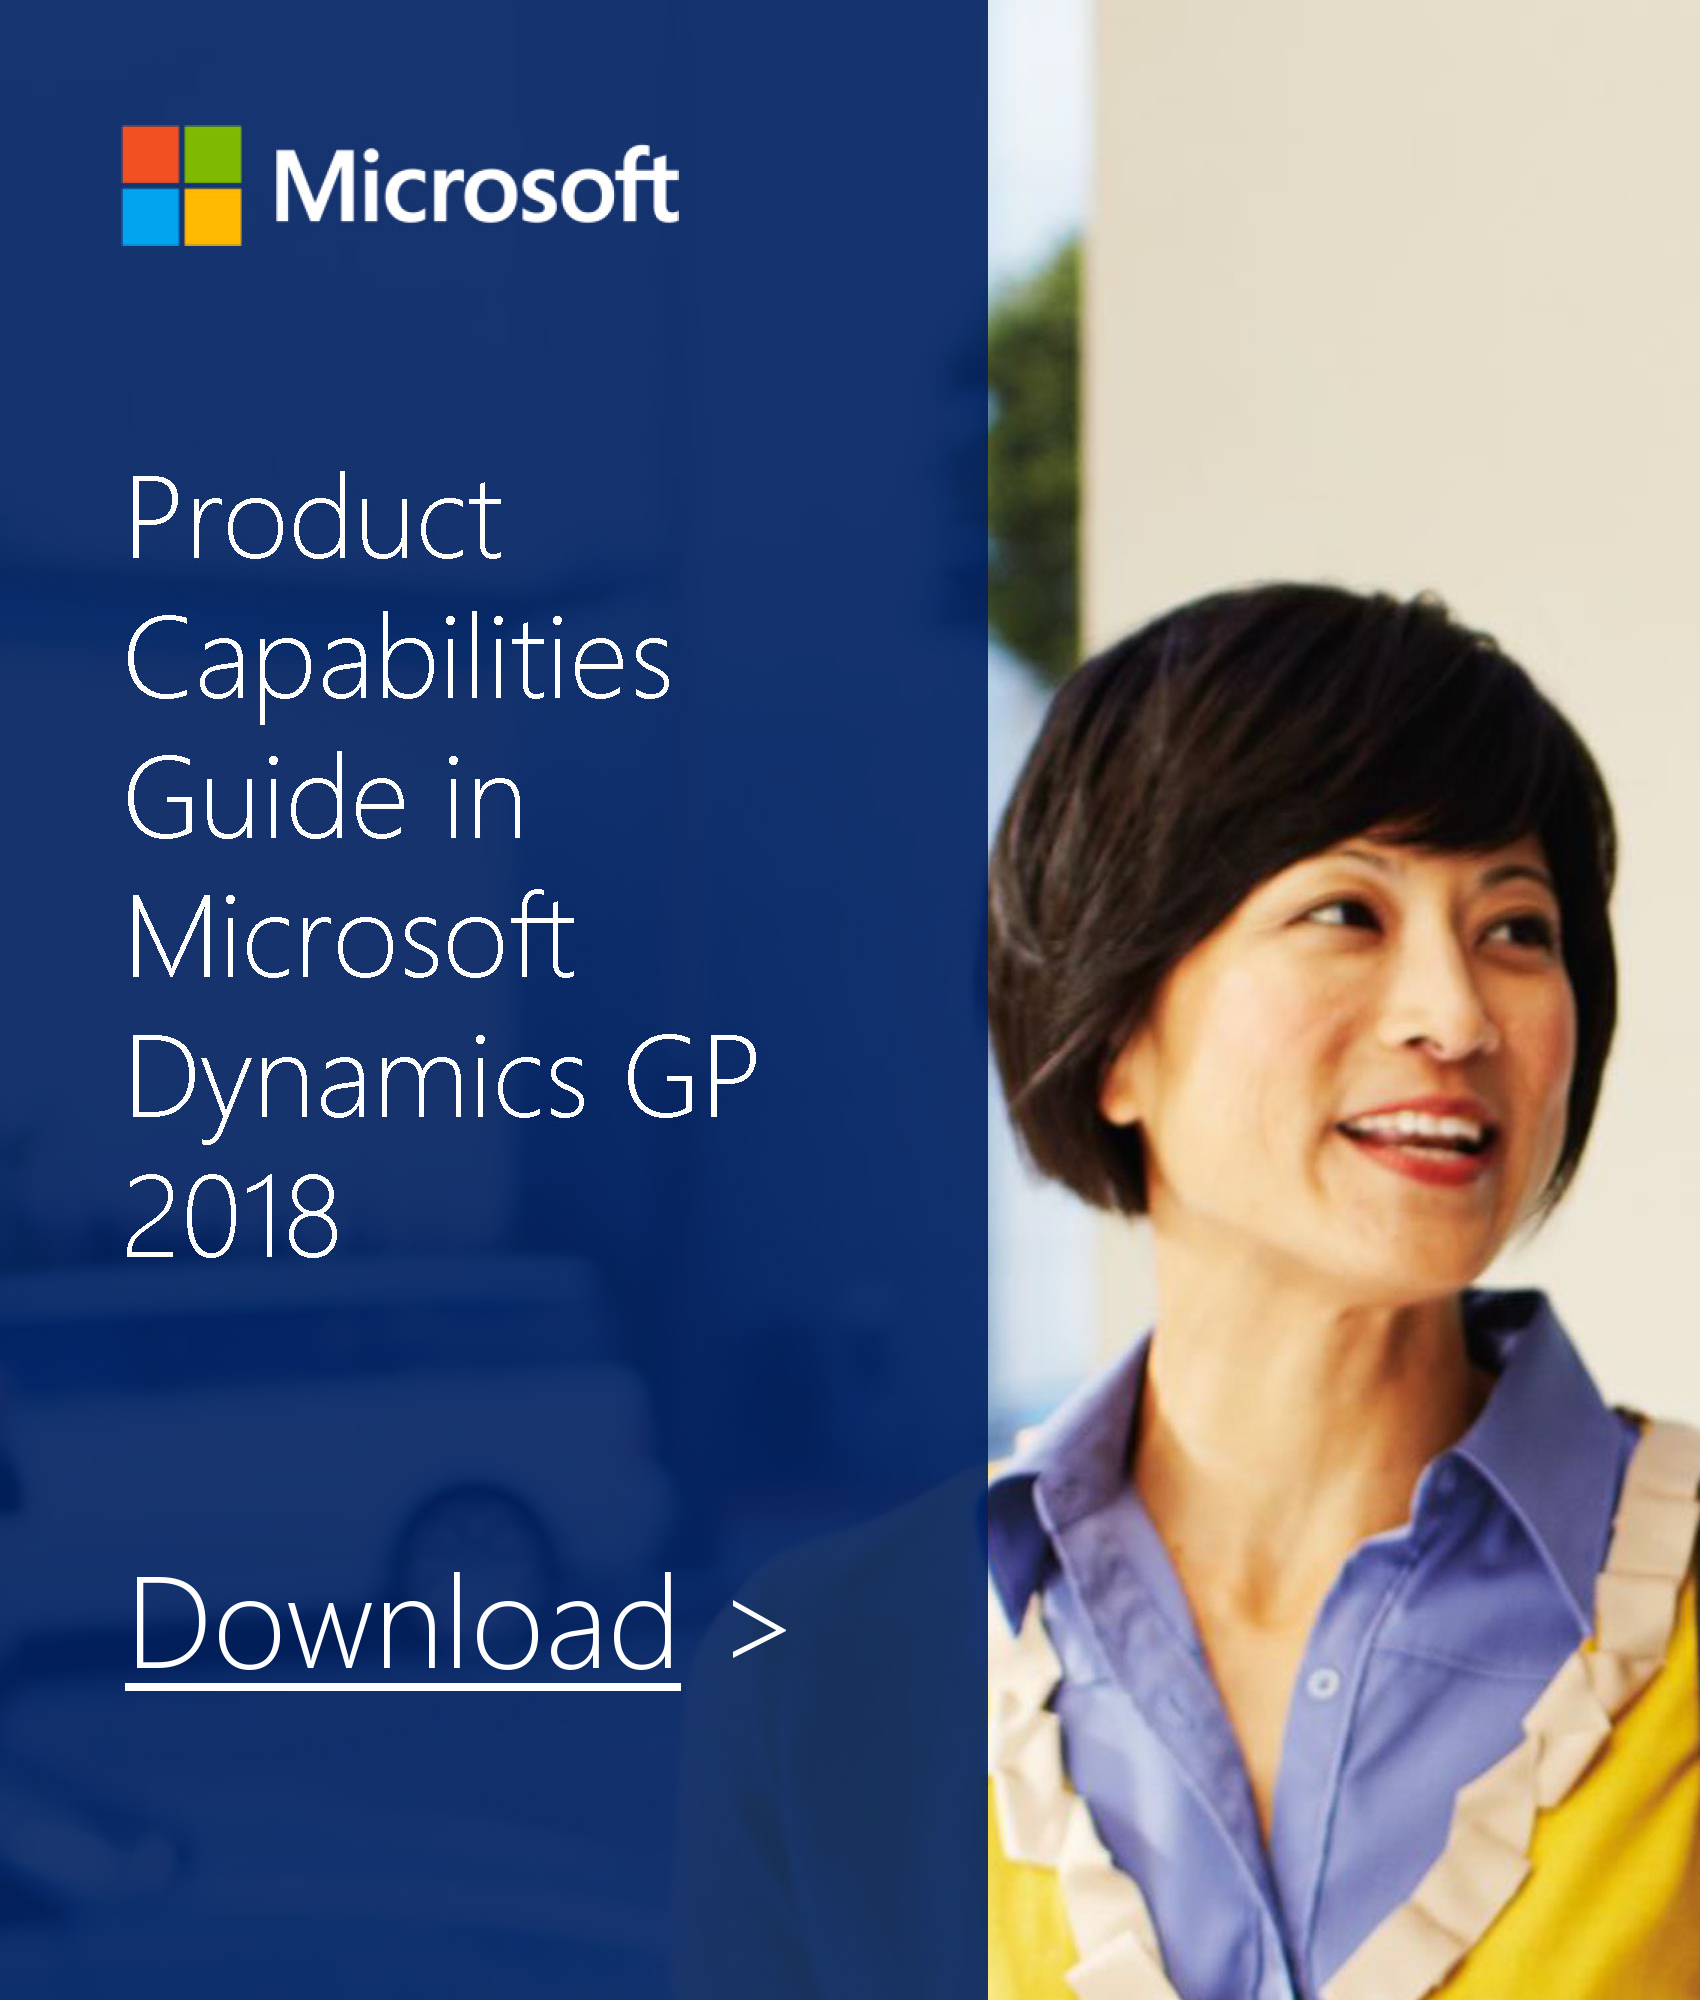 Dynamics GP 2018 Capability Guide